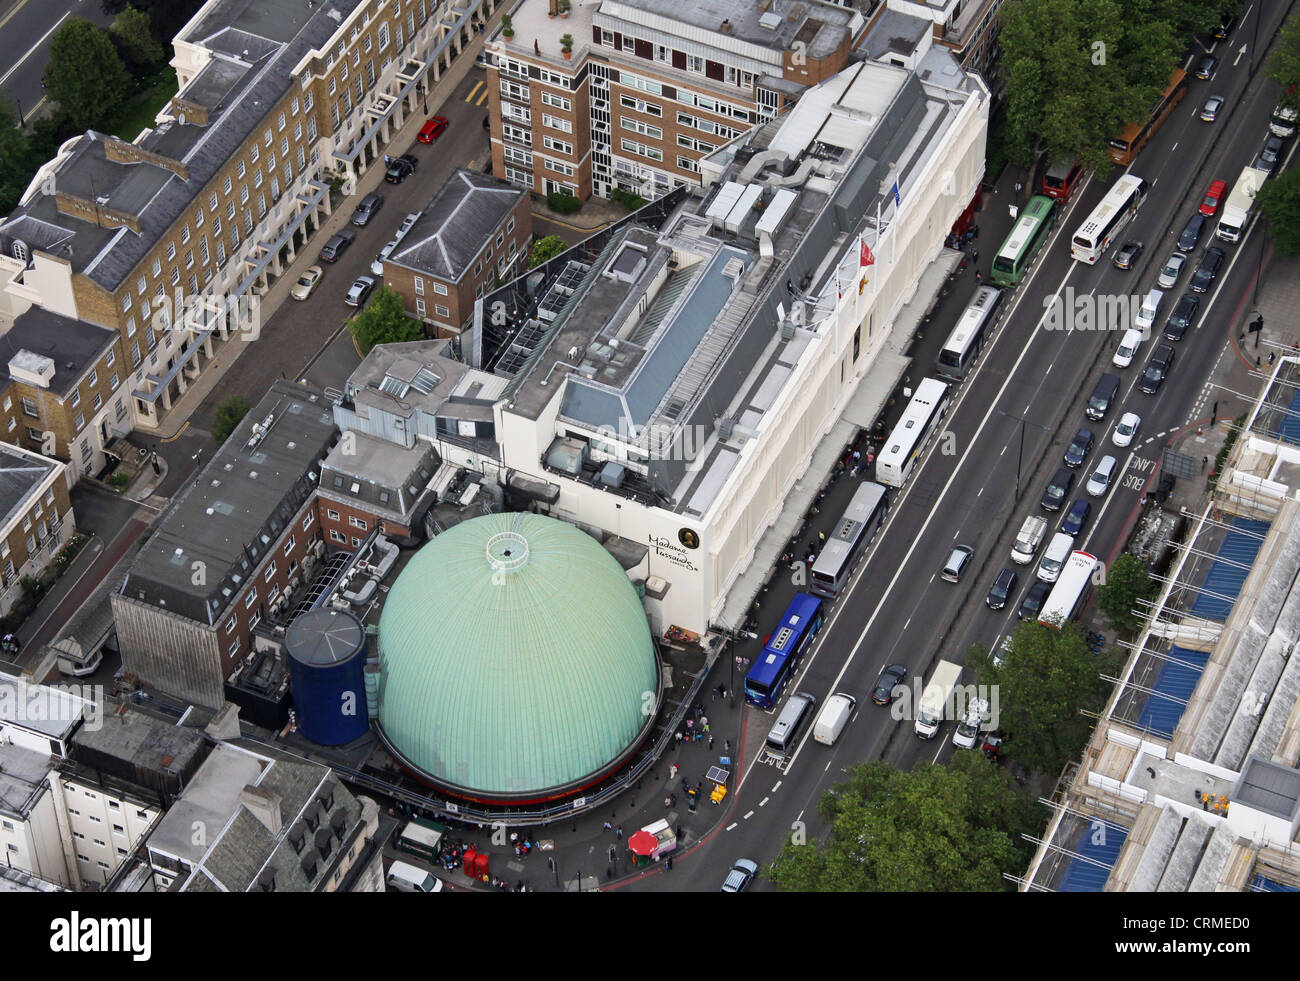 aerial view of Madame Tussauds and London Planetarium on Marylebone Street, London NW1 - Stock Image